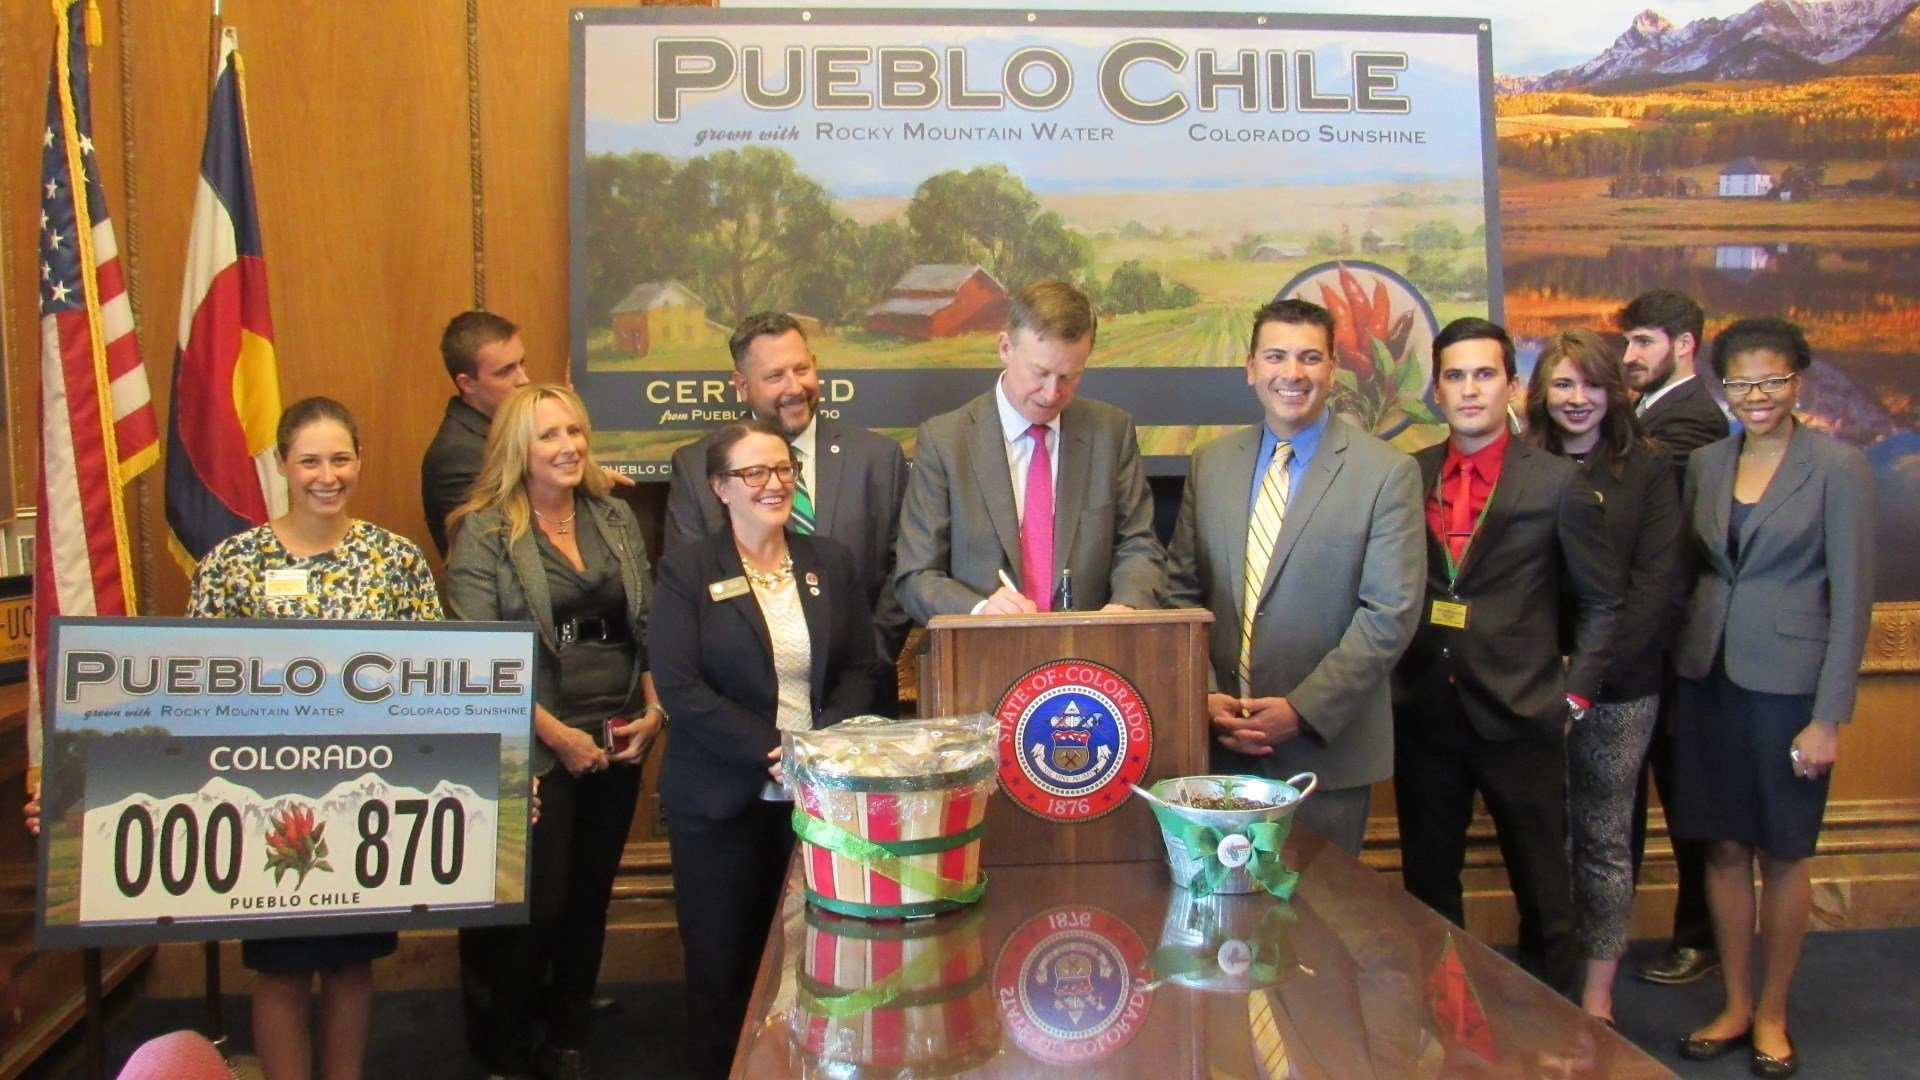 Flanked by Rep. Daneya Esgar, D-Pueblo, and Sen. Leroy Garcia, D-Pueblo, Gov. John Hickenlooper signs their bill to create the Pueblo Chile license plate. Rep. Esgar's aide, Amy Johnson, holds a rendering of the plate.